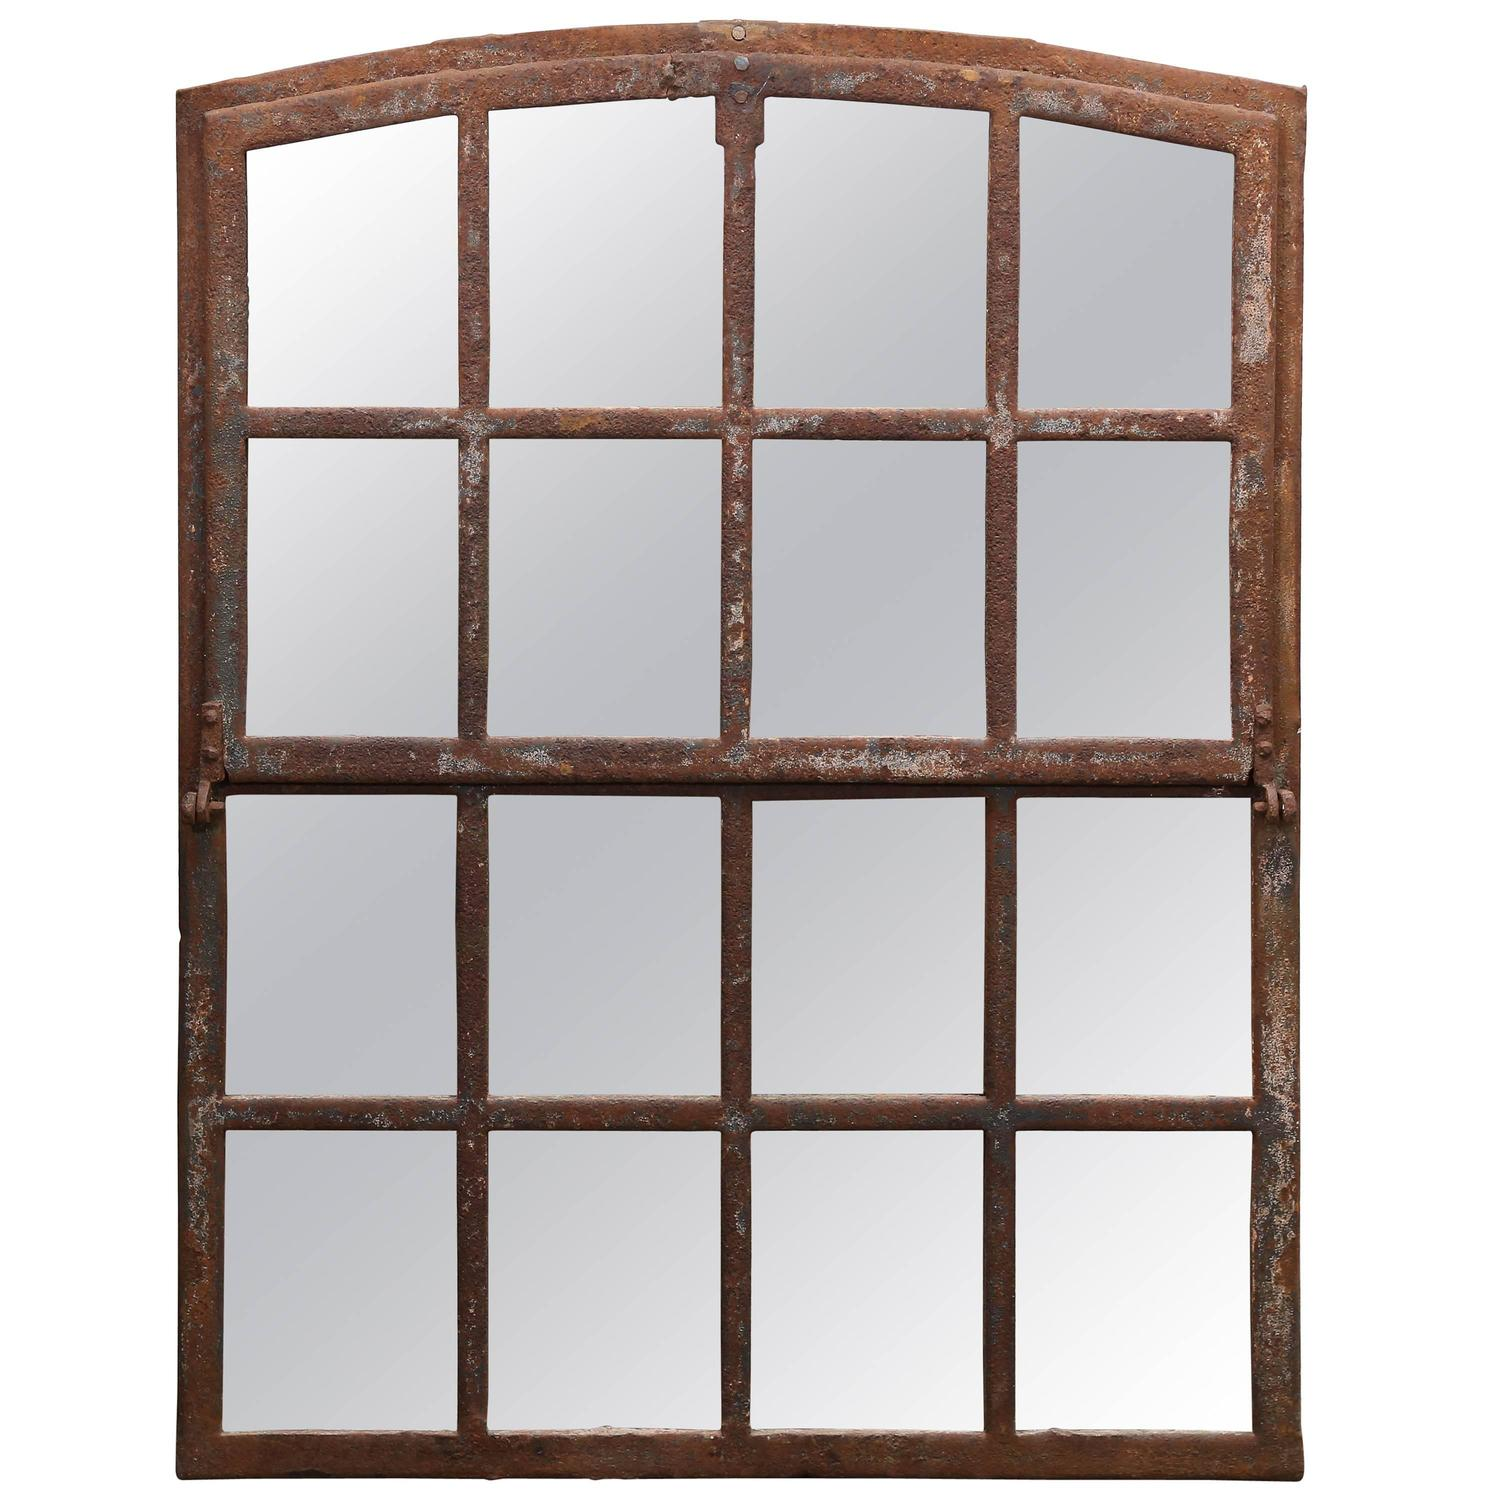 Antique 19th century industrial iron window mirror for for Window mirrors for sale